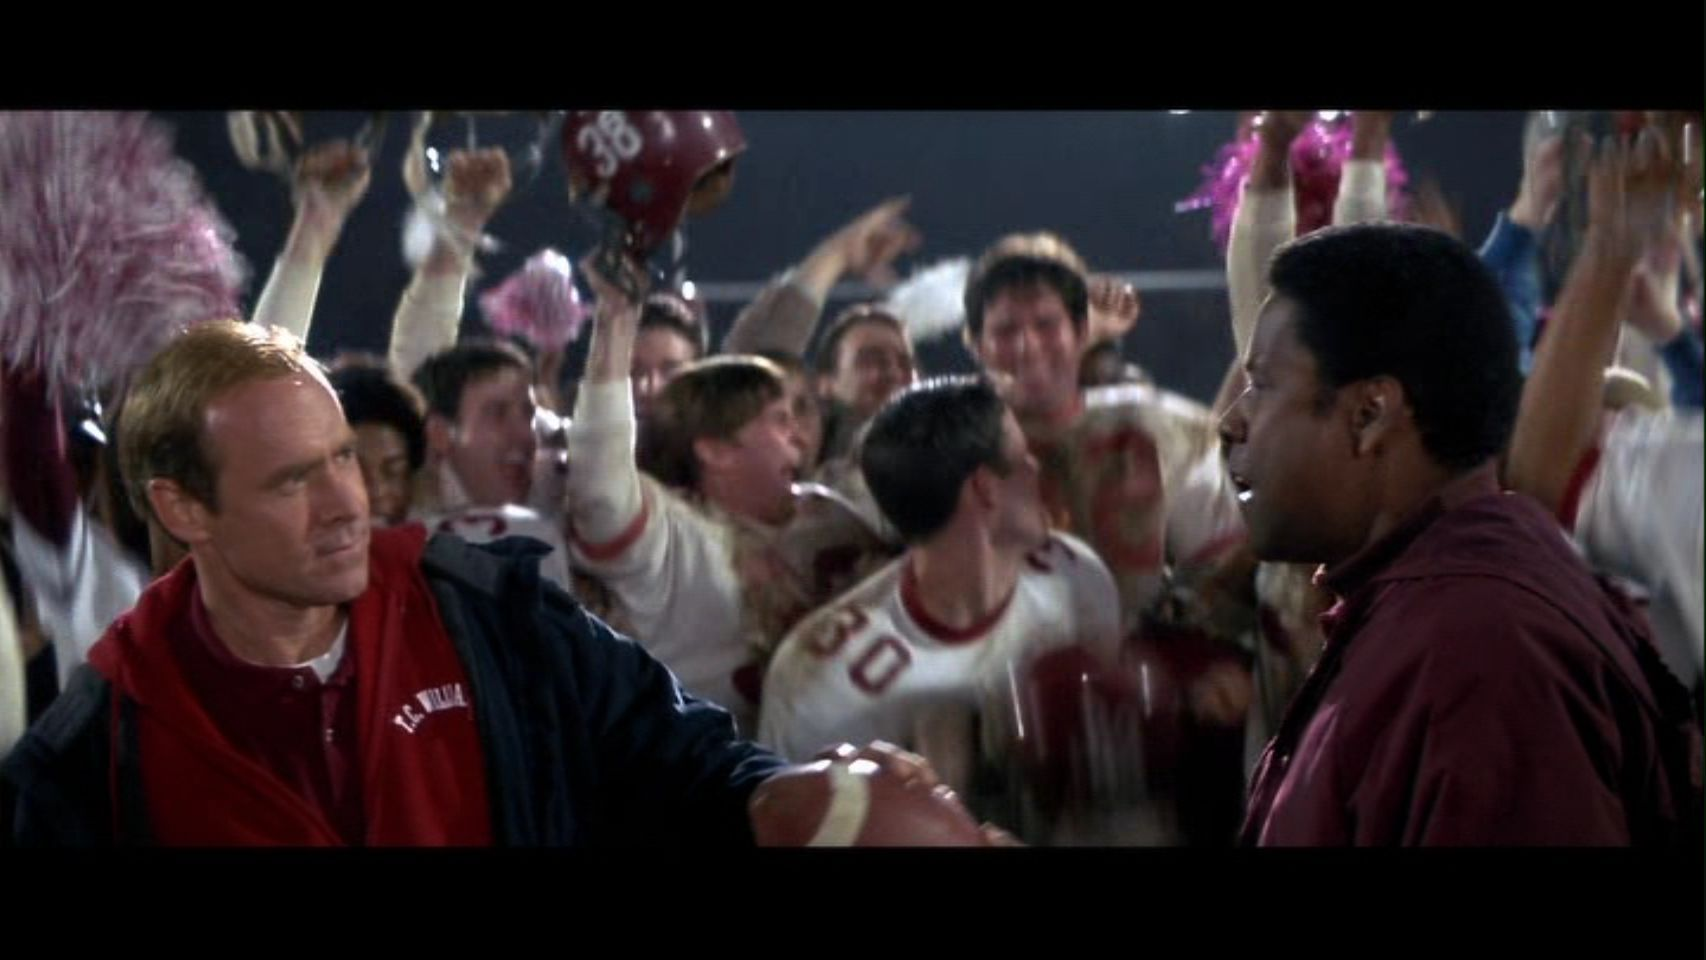 social issues paper on remember the titans Remember the titans essays: over 180,000 remember the titans essays, remember the titans term papers, remember the titans research paper, book reports 184 990 essays, term and research papers available for unlimited access.